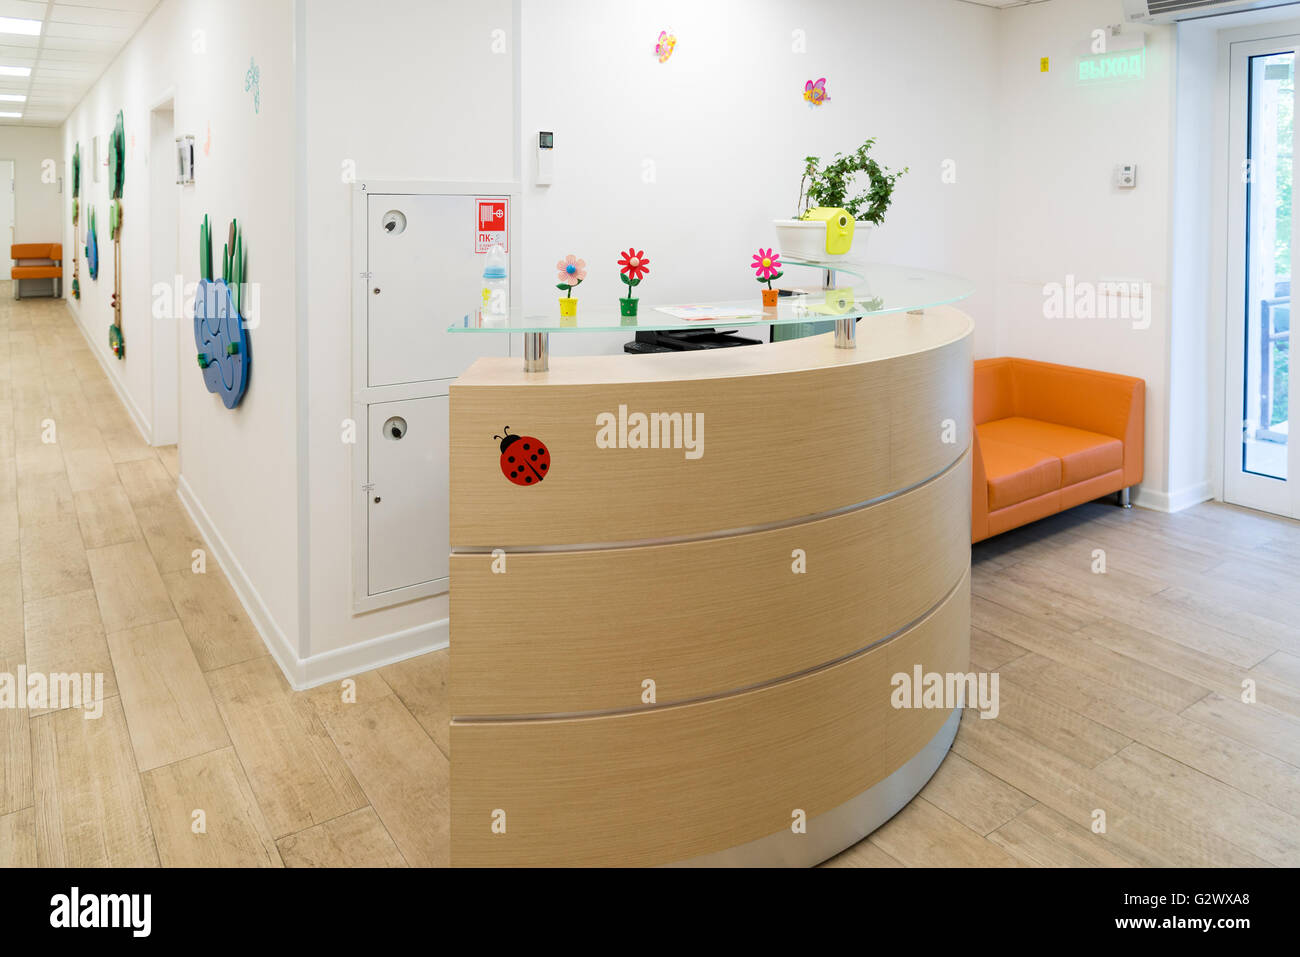 empty Reception in Children's Medical Center - Stock Image